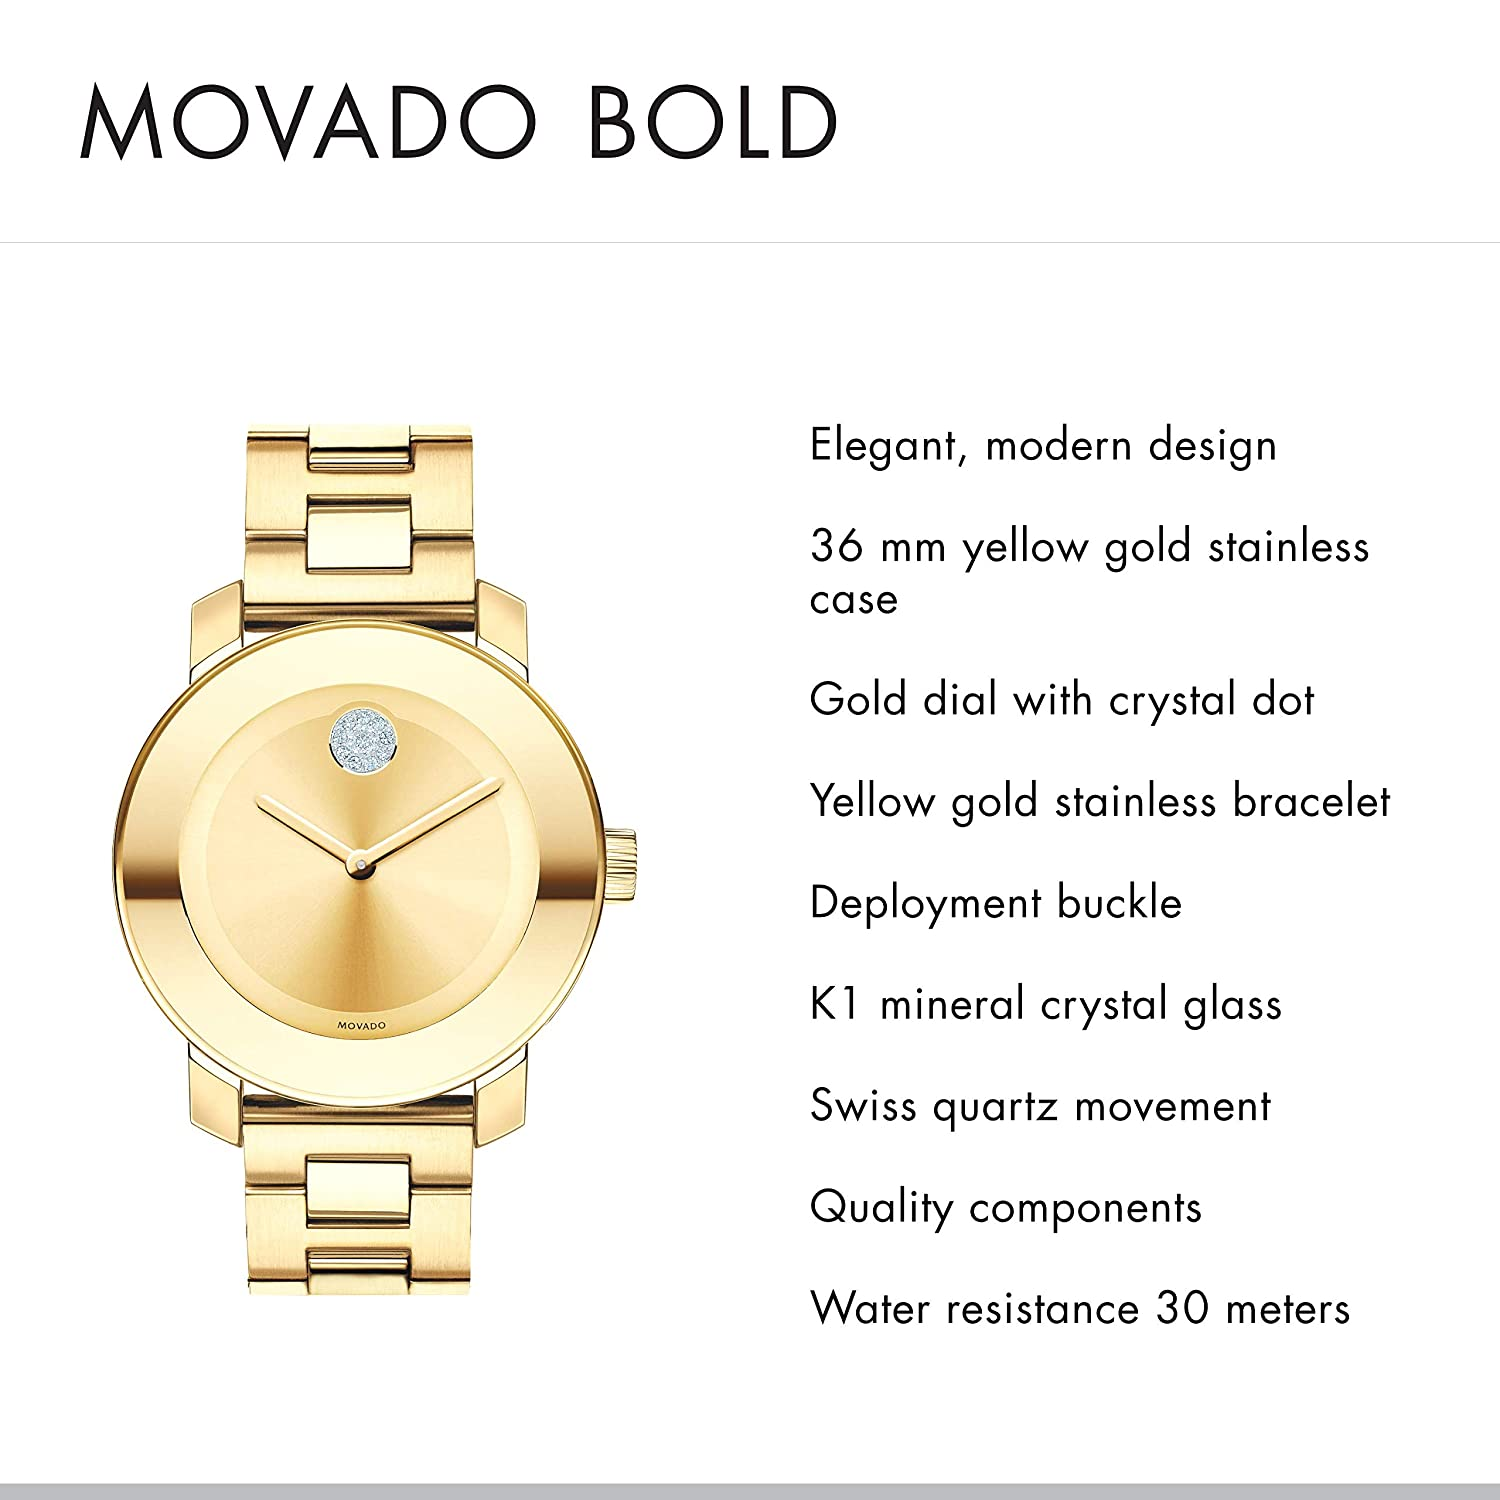 f37077eb1e7 Amazon.com  Movado Women s BOLD Iconic Metal Yellow Gold Watch with a Flat  Dot Sunray Dial